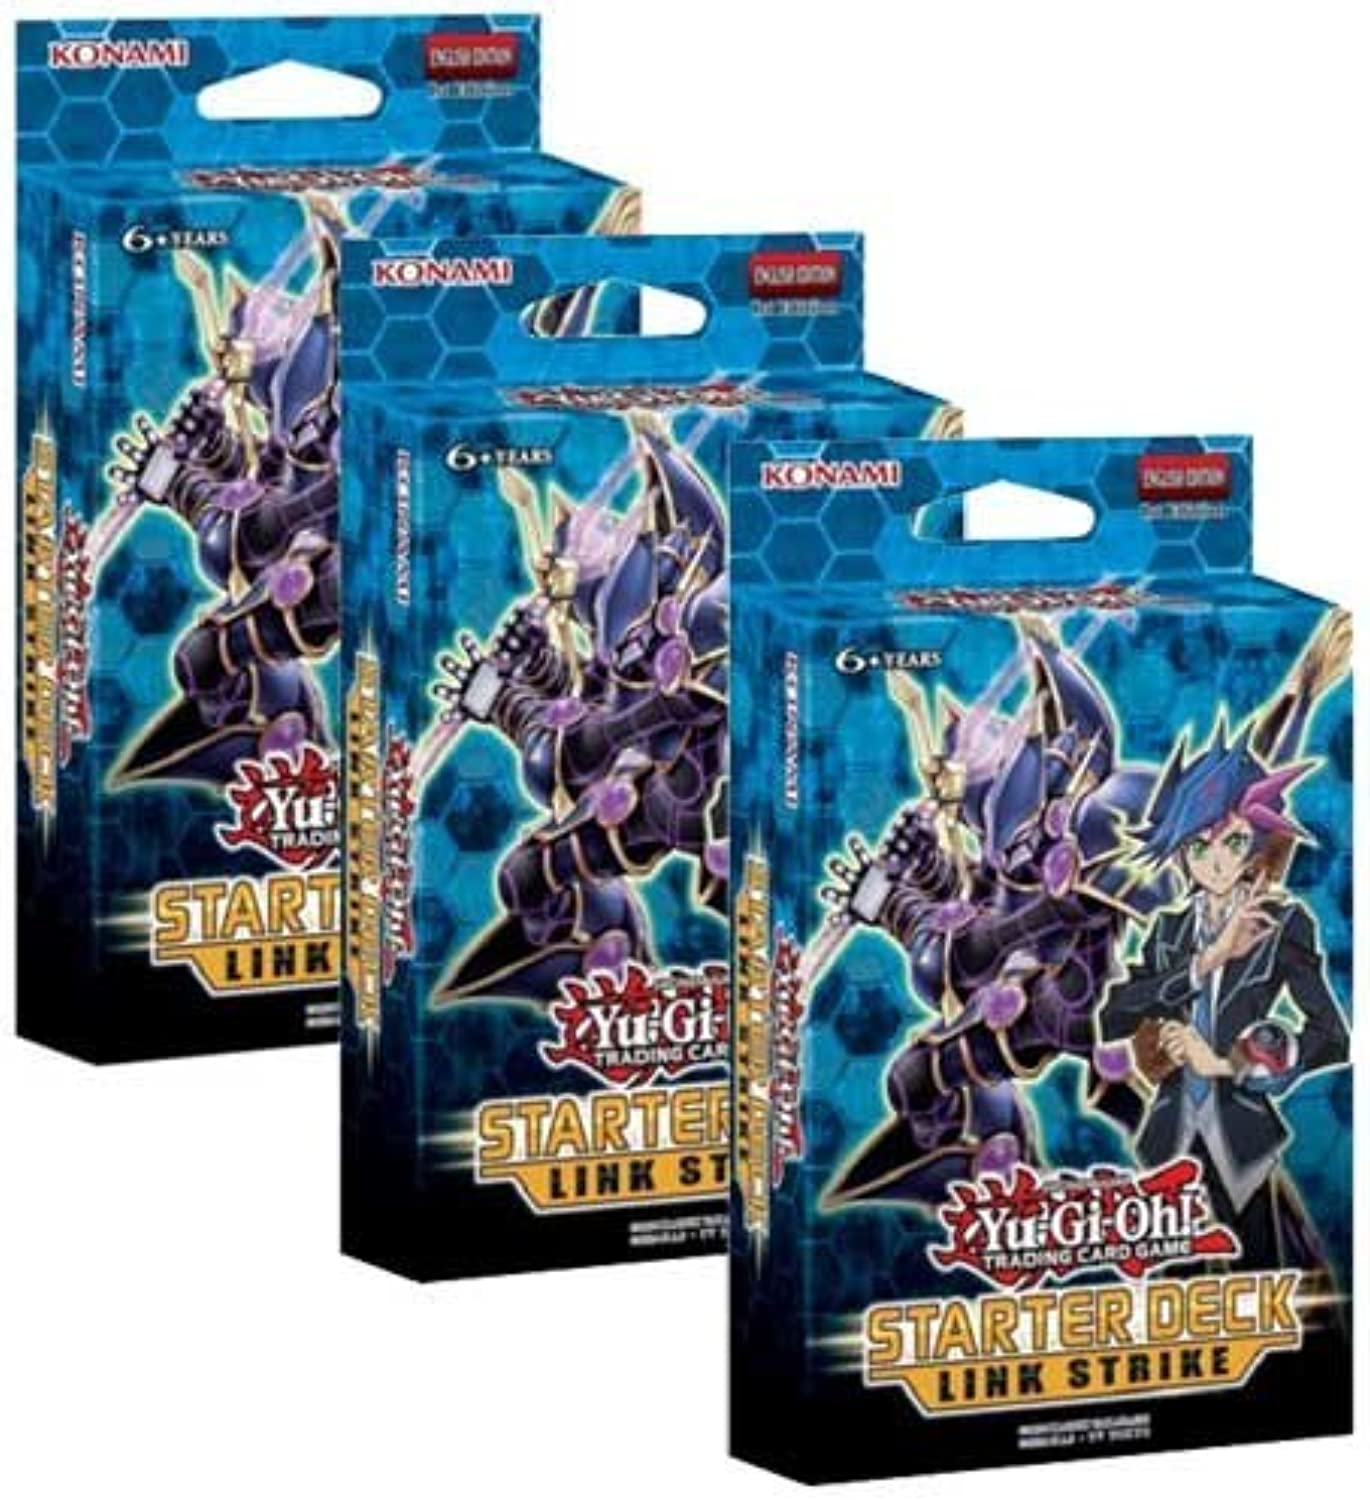 Yu-Gi-Oh  3 Decks - Yugioh Link Strike 2017 Starter Decks 1st Edition English - 43 Cards Each